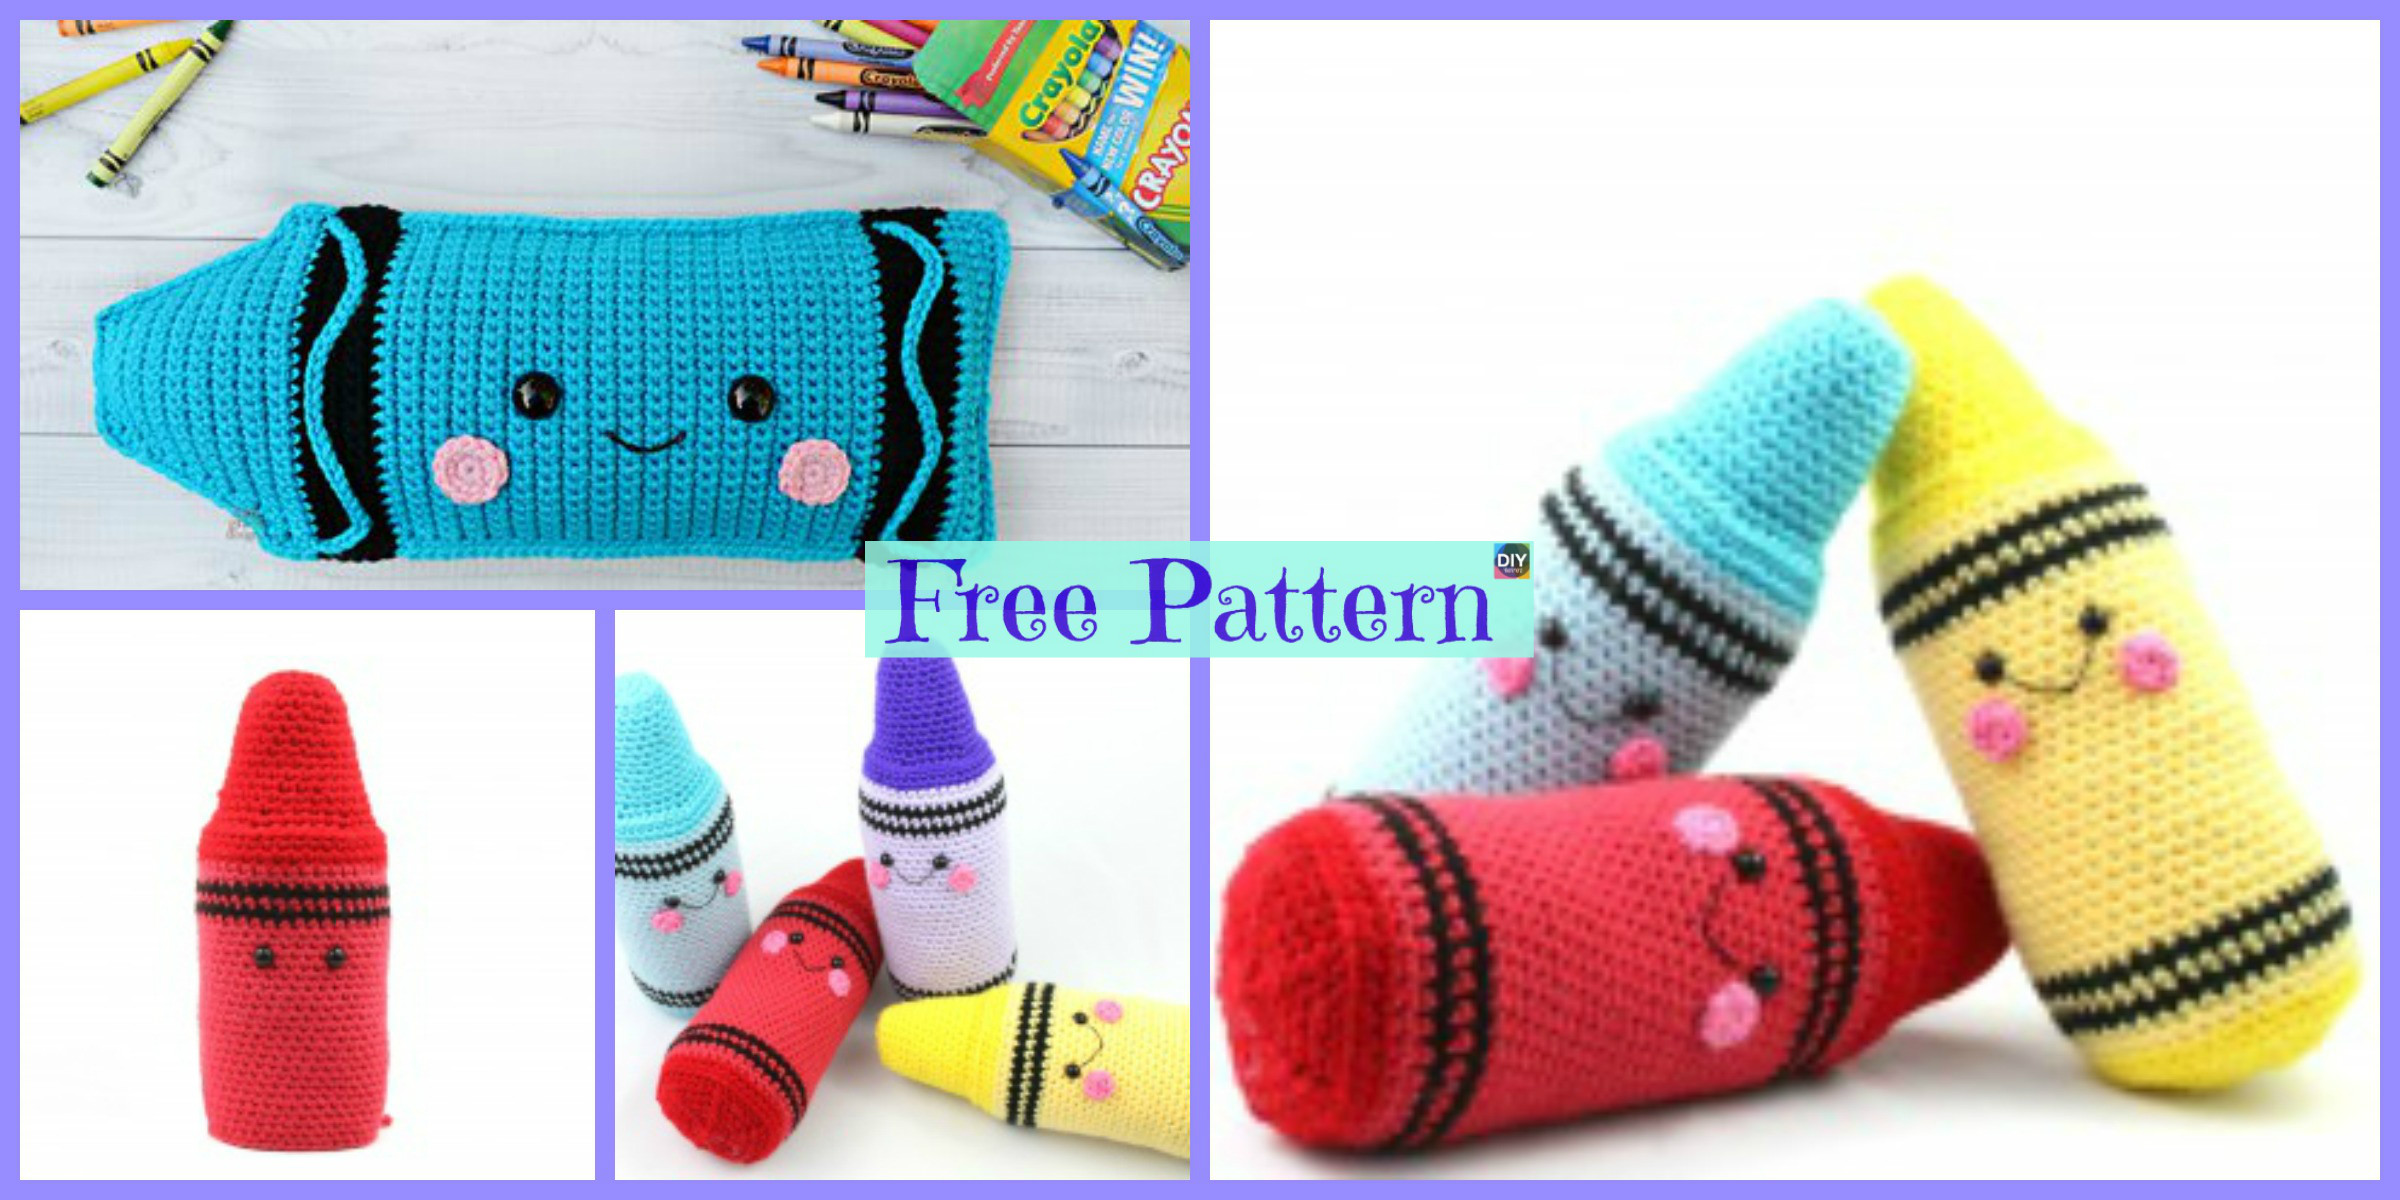 Crochet Crayon Amigurumi – Free Patterns